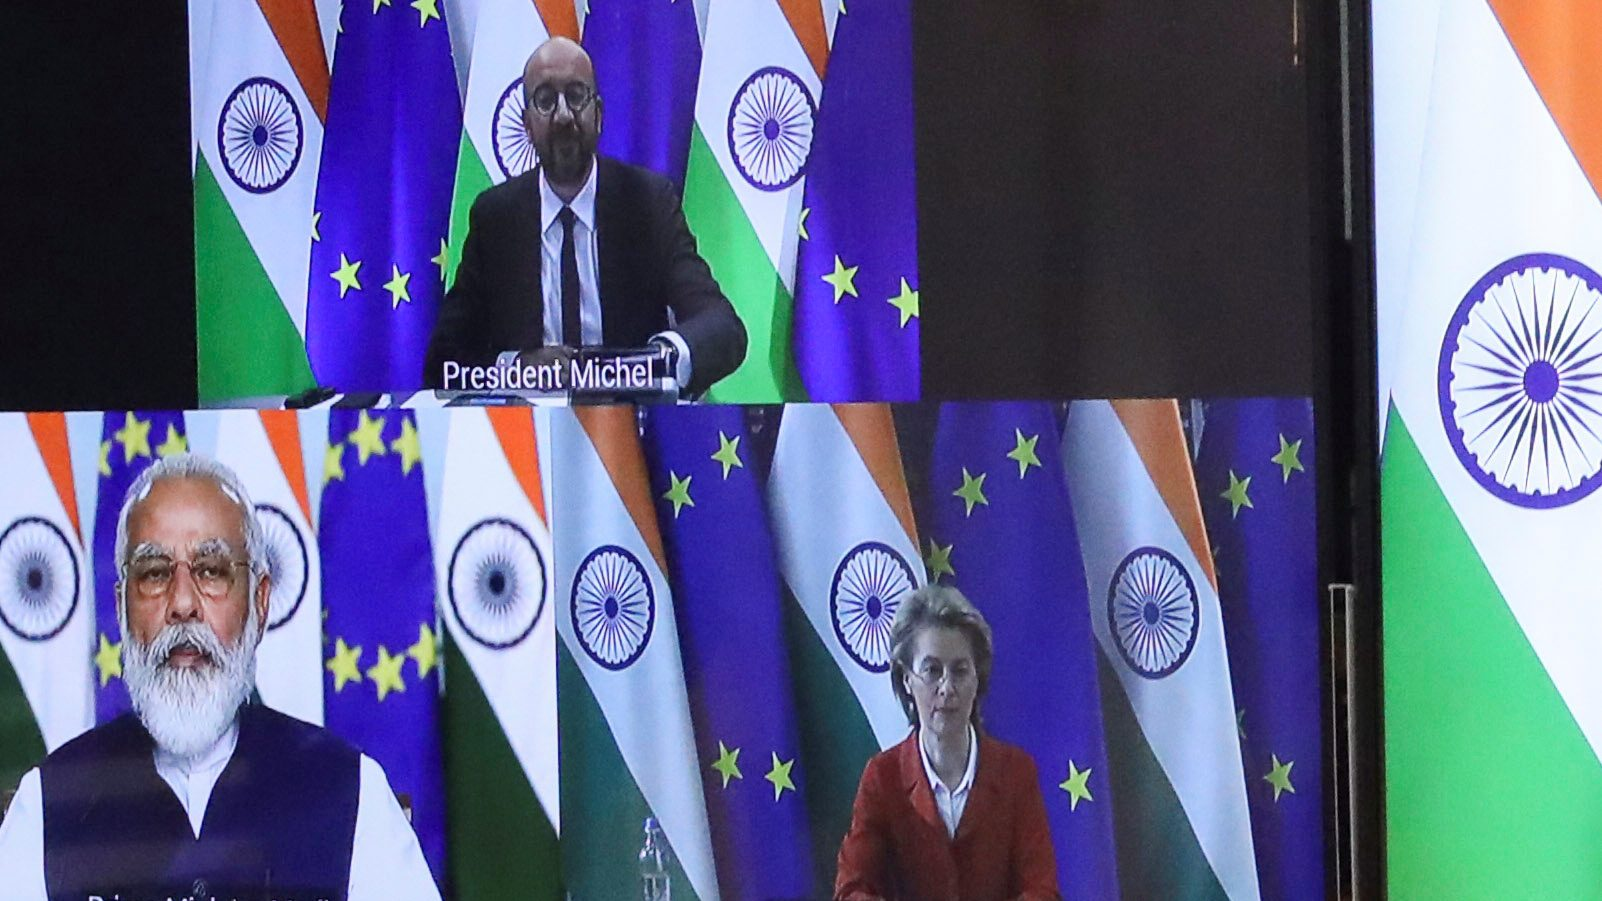 Modi and EU leaders are seen on a video screen